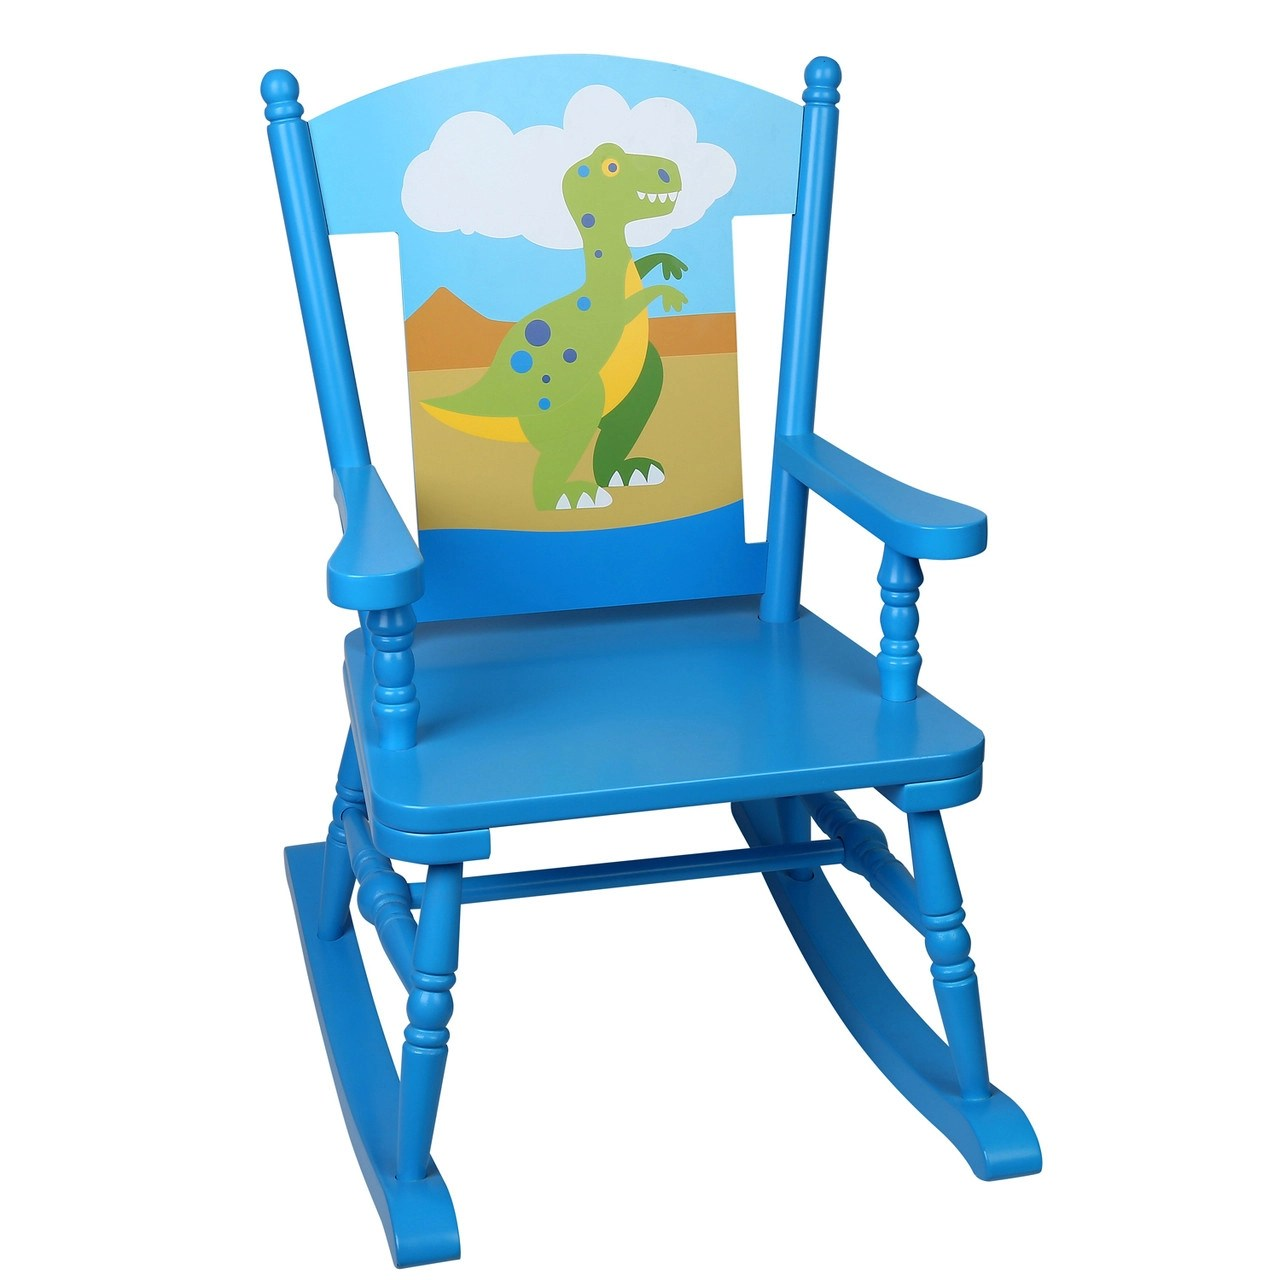 Kids Rocking Chairs Wildkin Dinosaur Land Rocking Chair